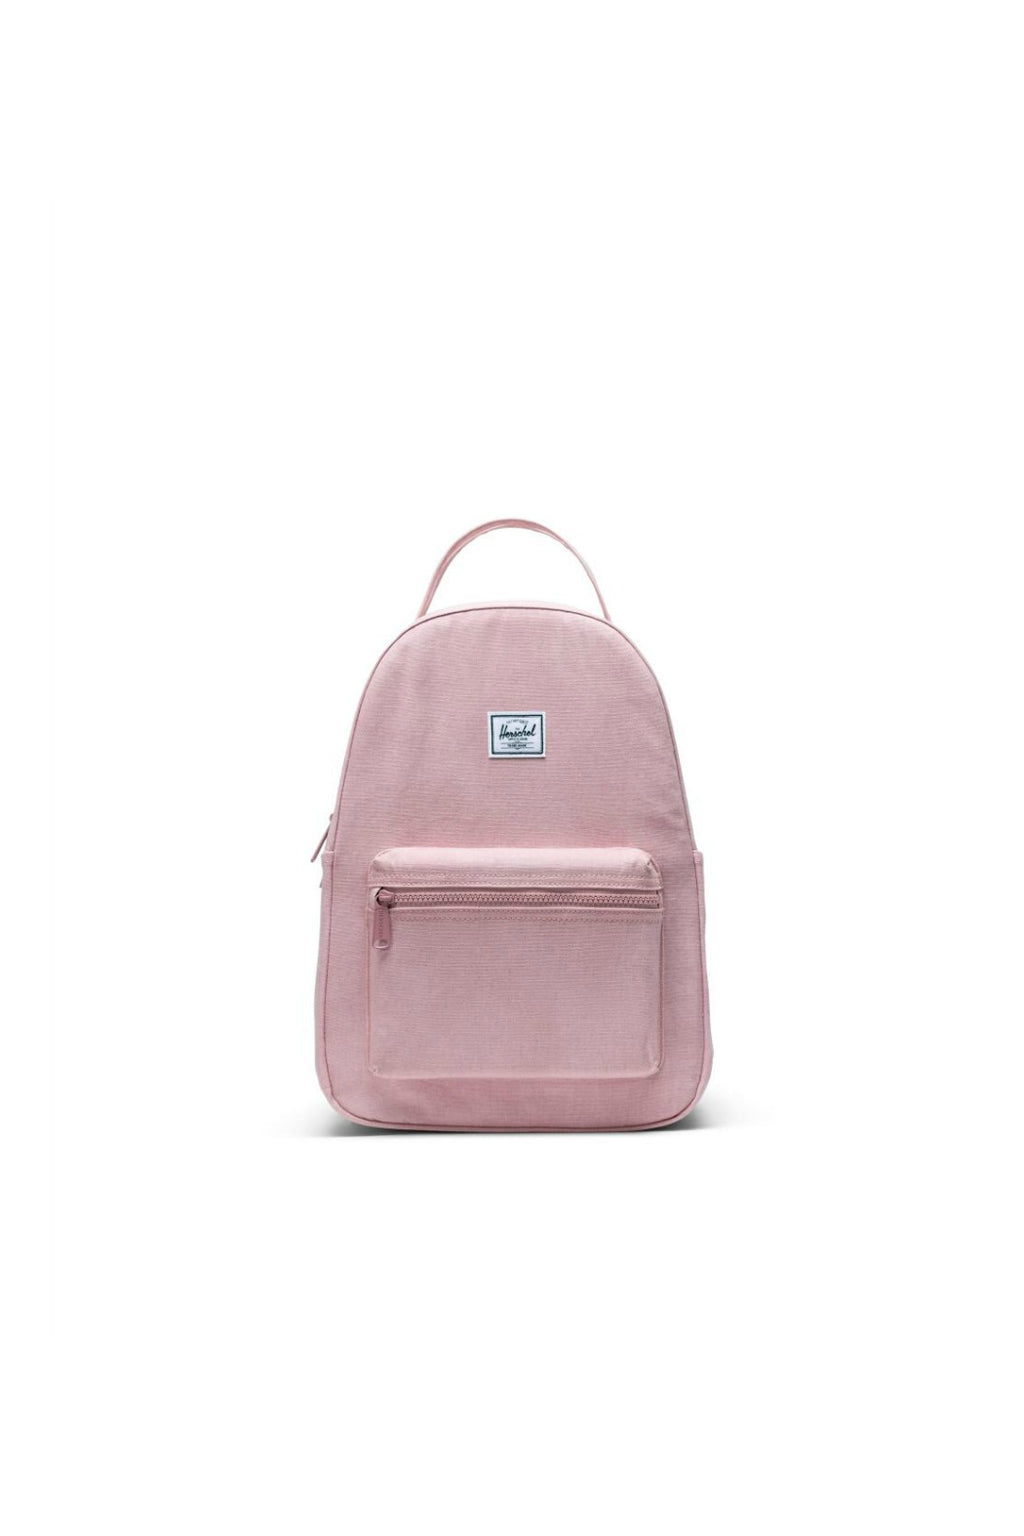 Herschel Supply Co. Nova Small Backpack - Pale Mauve